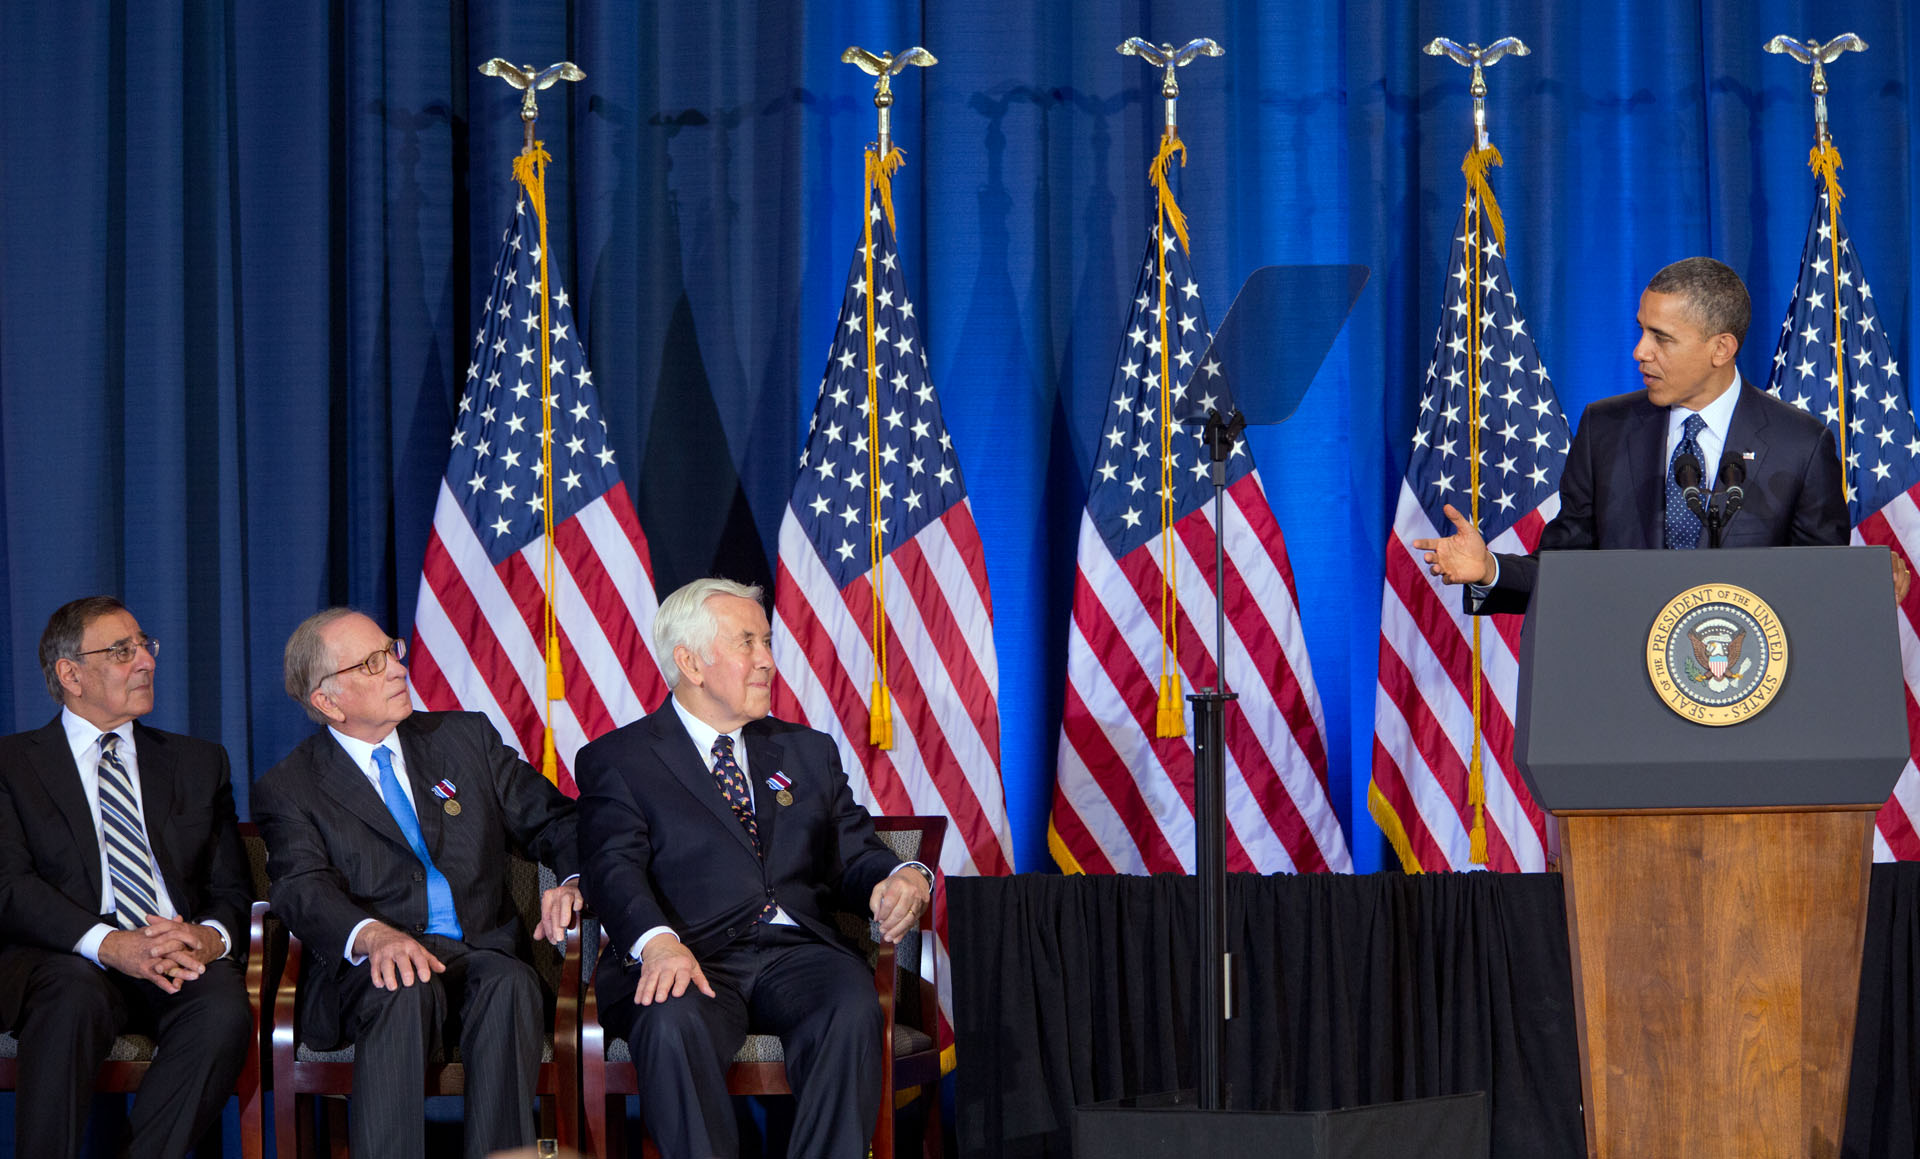 President Barack Obama delivers remarks to the Nunn-Lugar Cooperative Threat Reduction symposium (December 3, 2012)